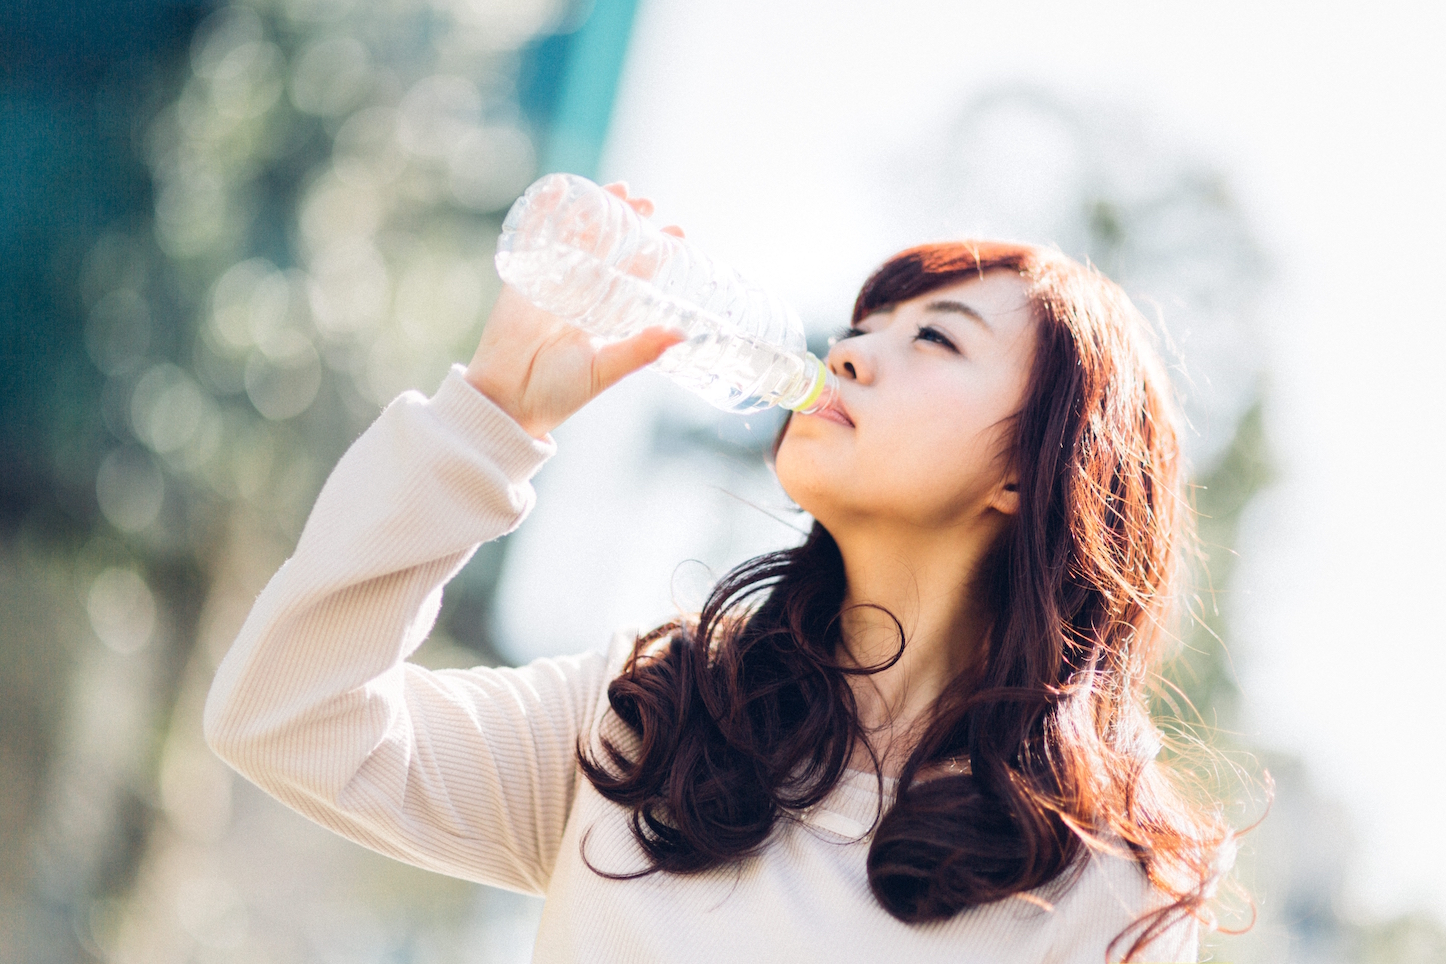 Yuka drinking water from bottle